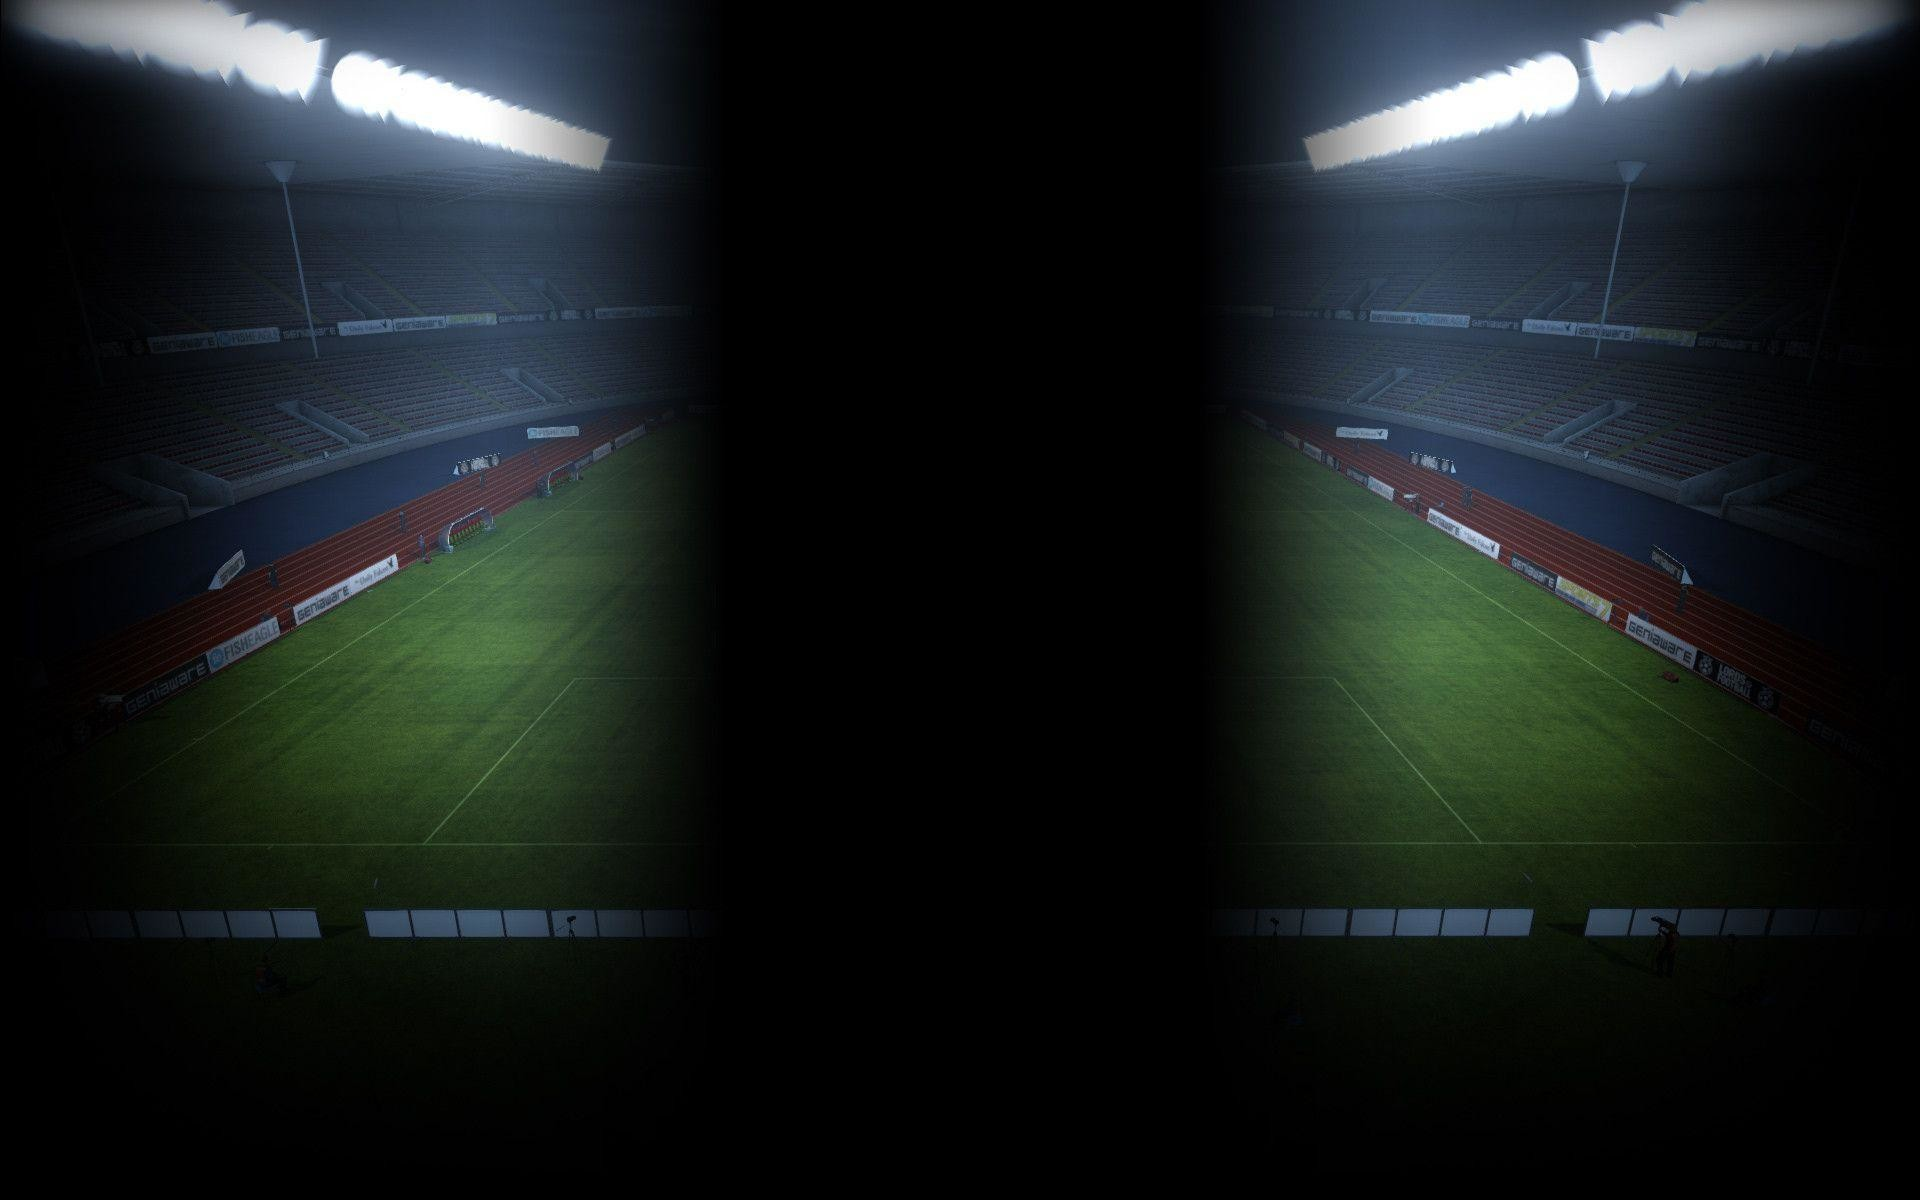 1920x1200 Image - Lords of Football Backgrounds Stadium lights.jpg - Steam .